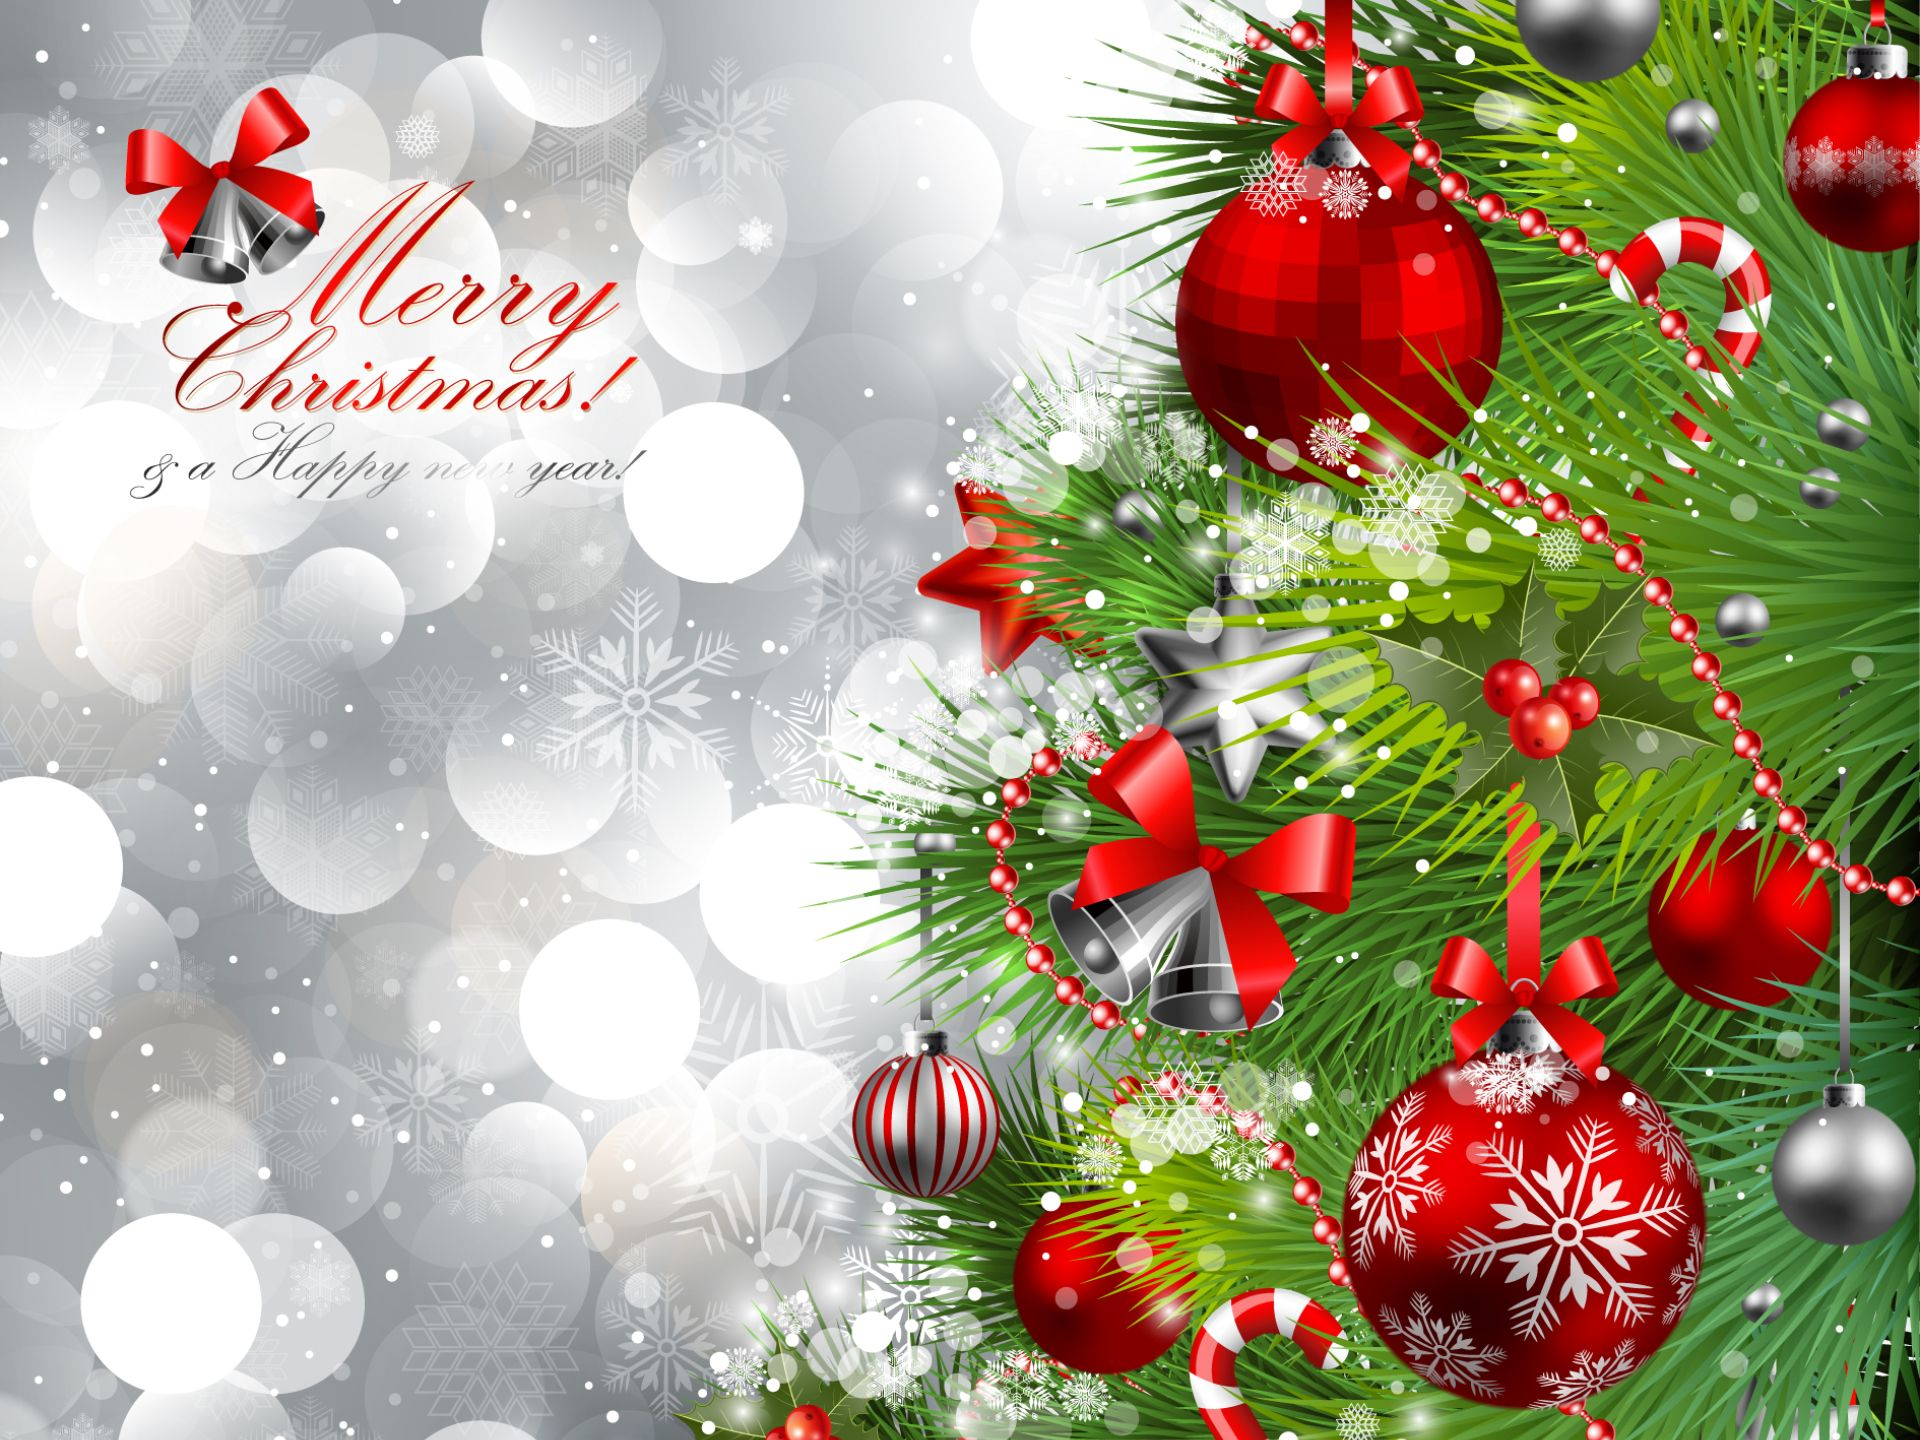 Christmas Wallpaper Merry Christmas Merry Christmas Wallpaper Merry Christmas Images Merry Christmas Pictures